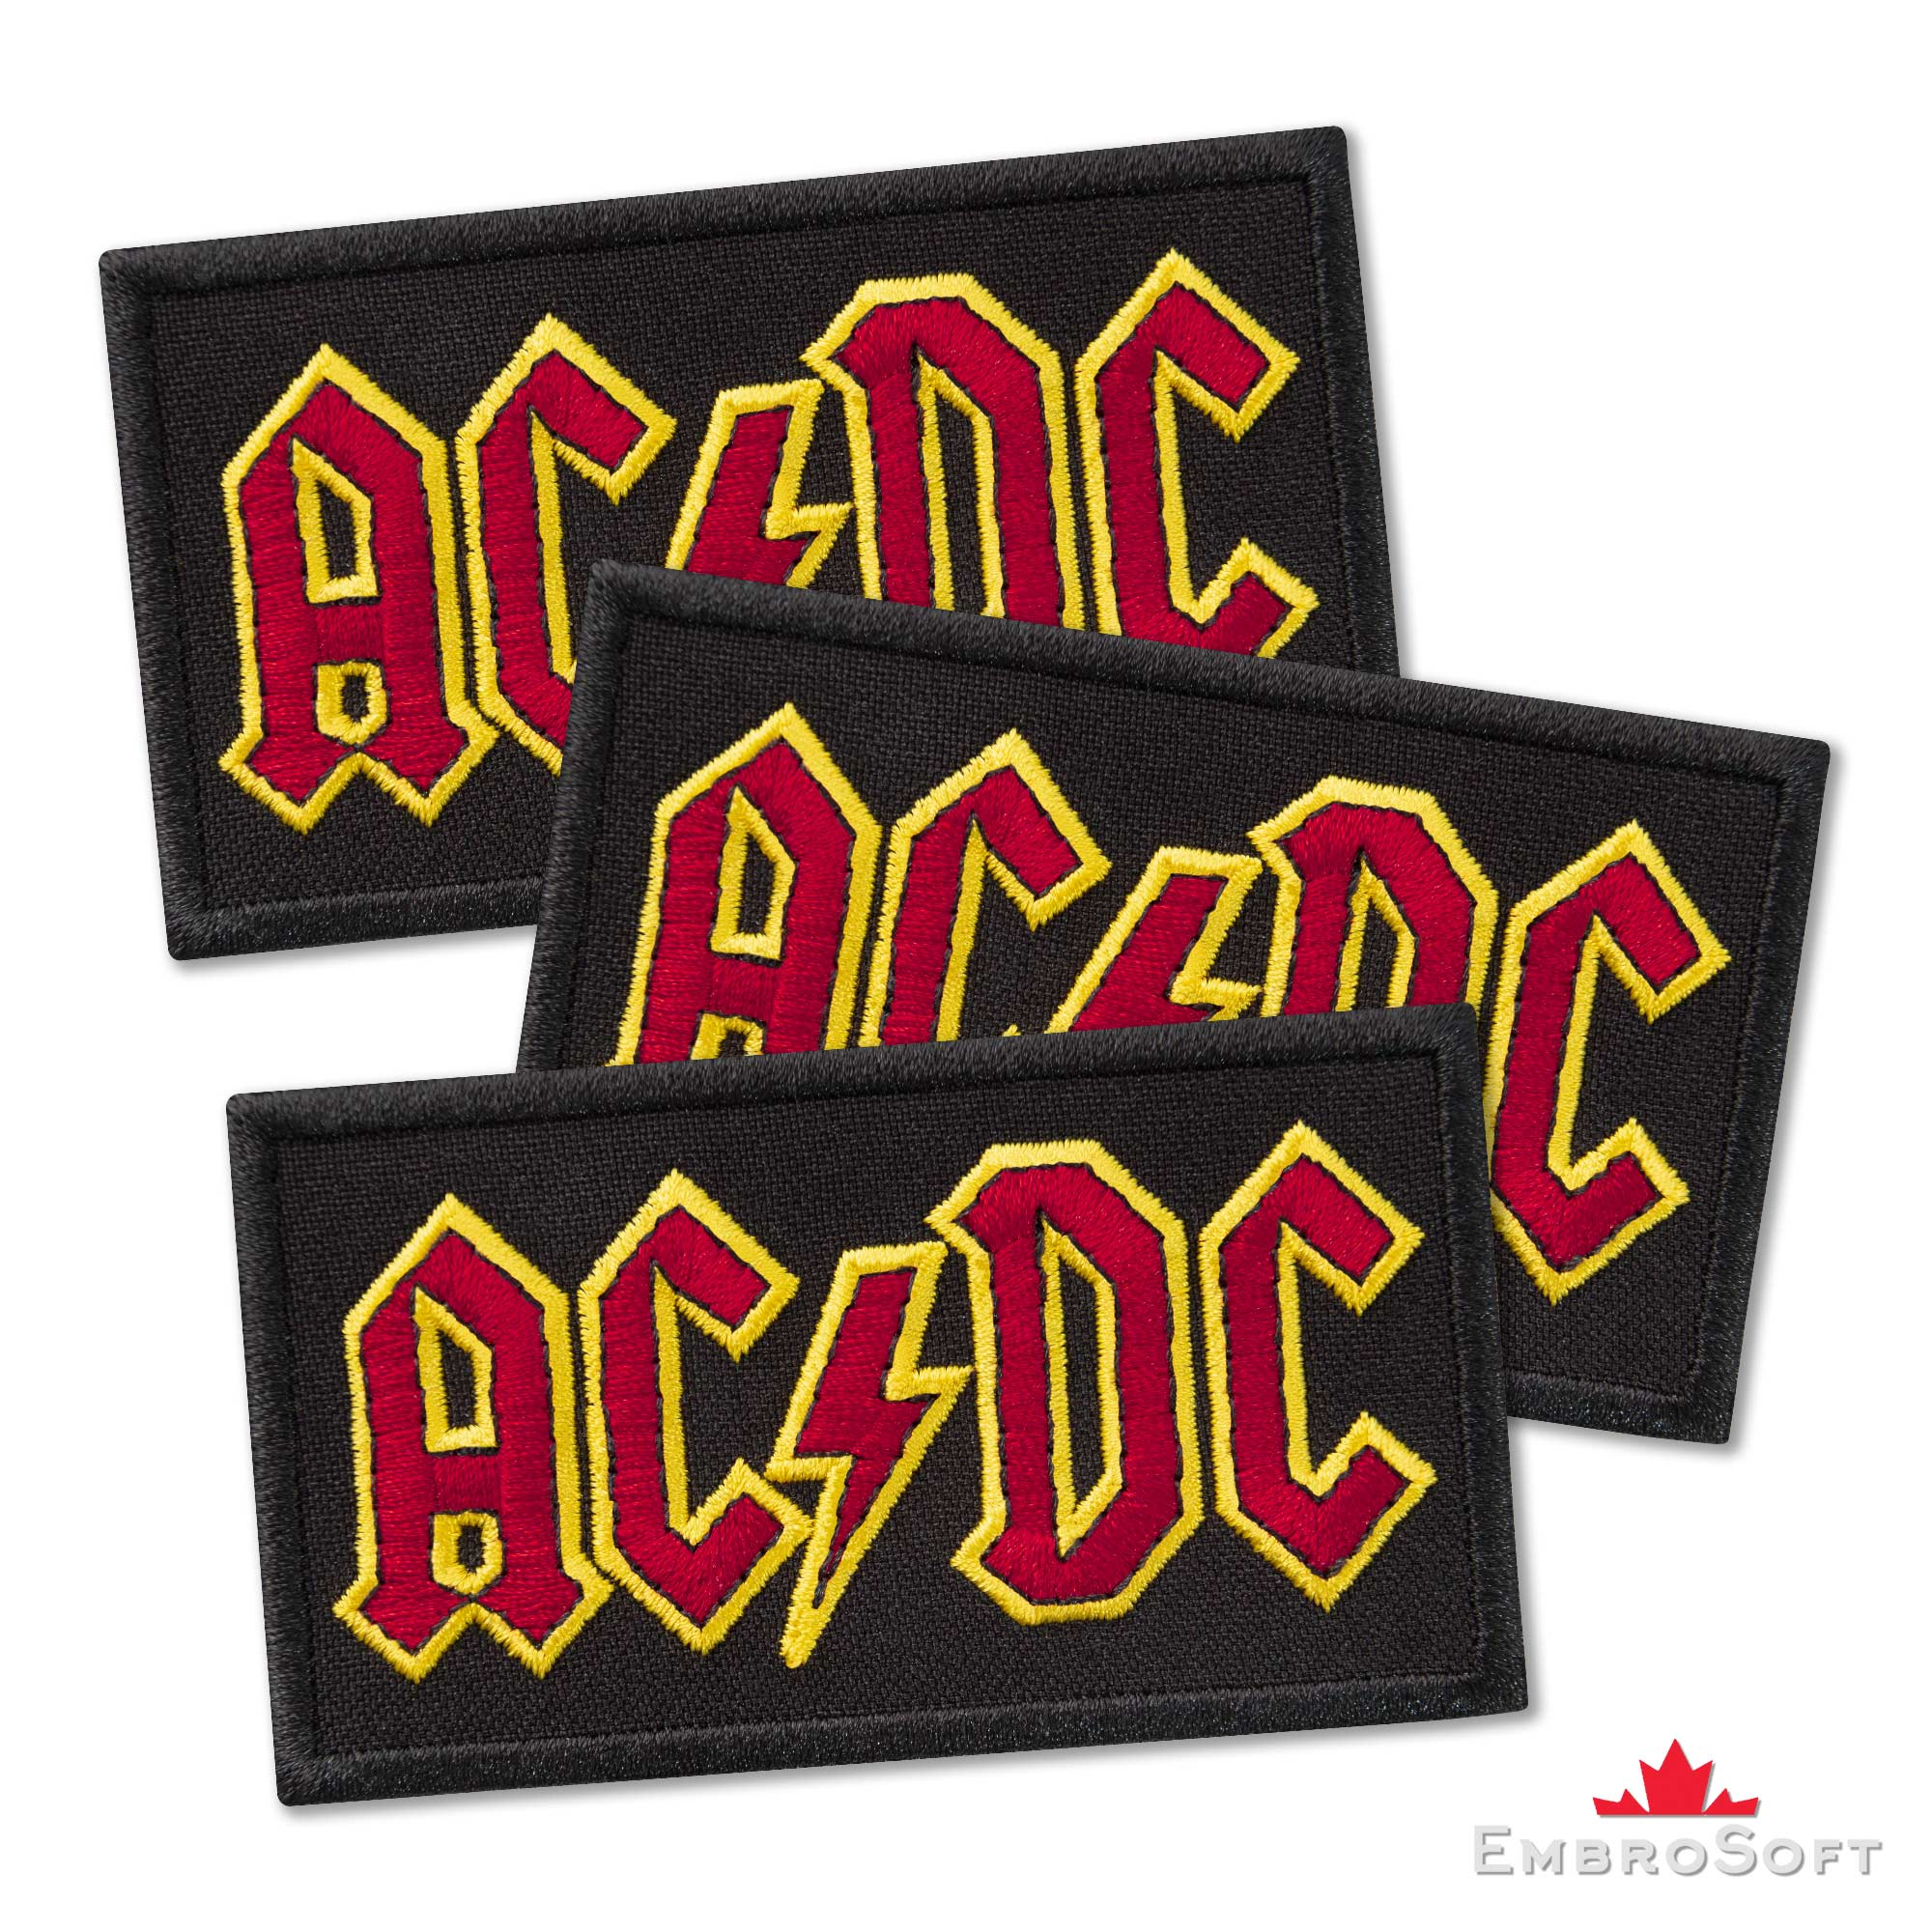 Ac Dc Logo Embroidered Patch 3 4ʺ X 1 9ʺ Embrosoft